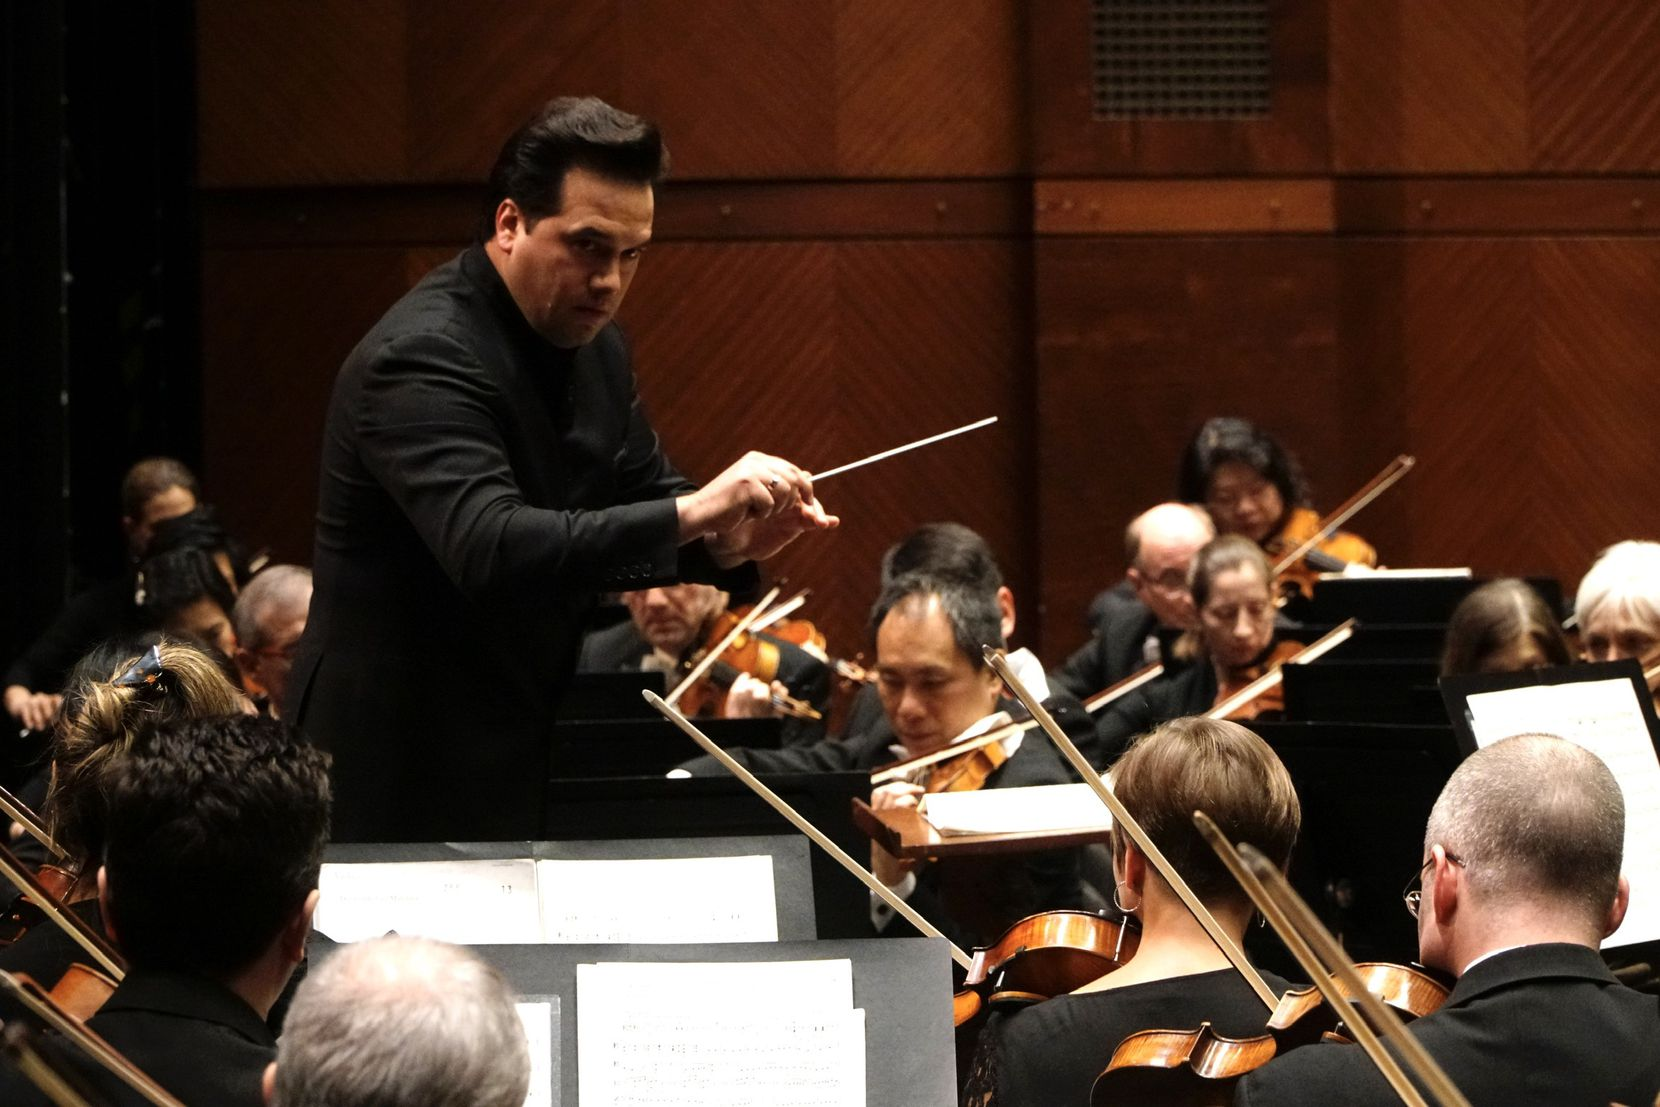 Guest Conductor Robert Trevino gives direction to the Fort Worth Symphony Orchestra at Bass Performance Hall in Fort Worth, TX on Friday, February 28, 2020.